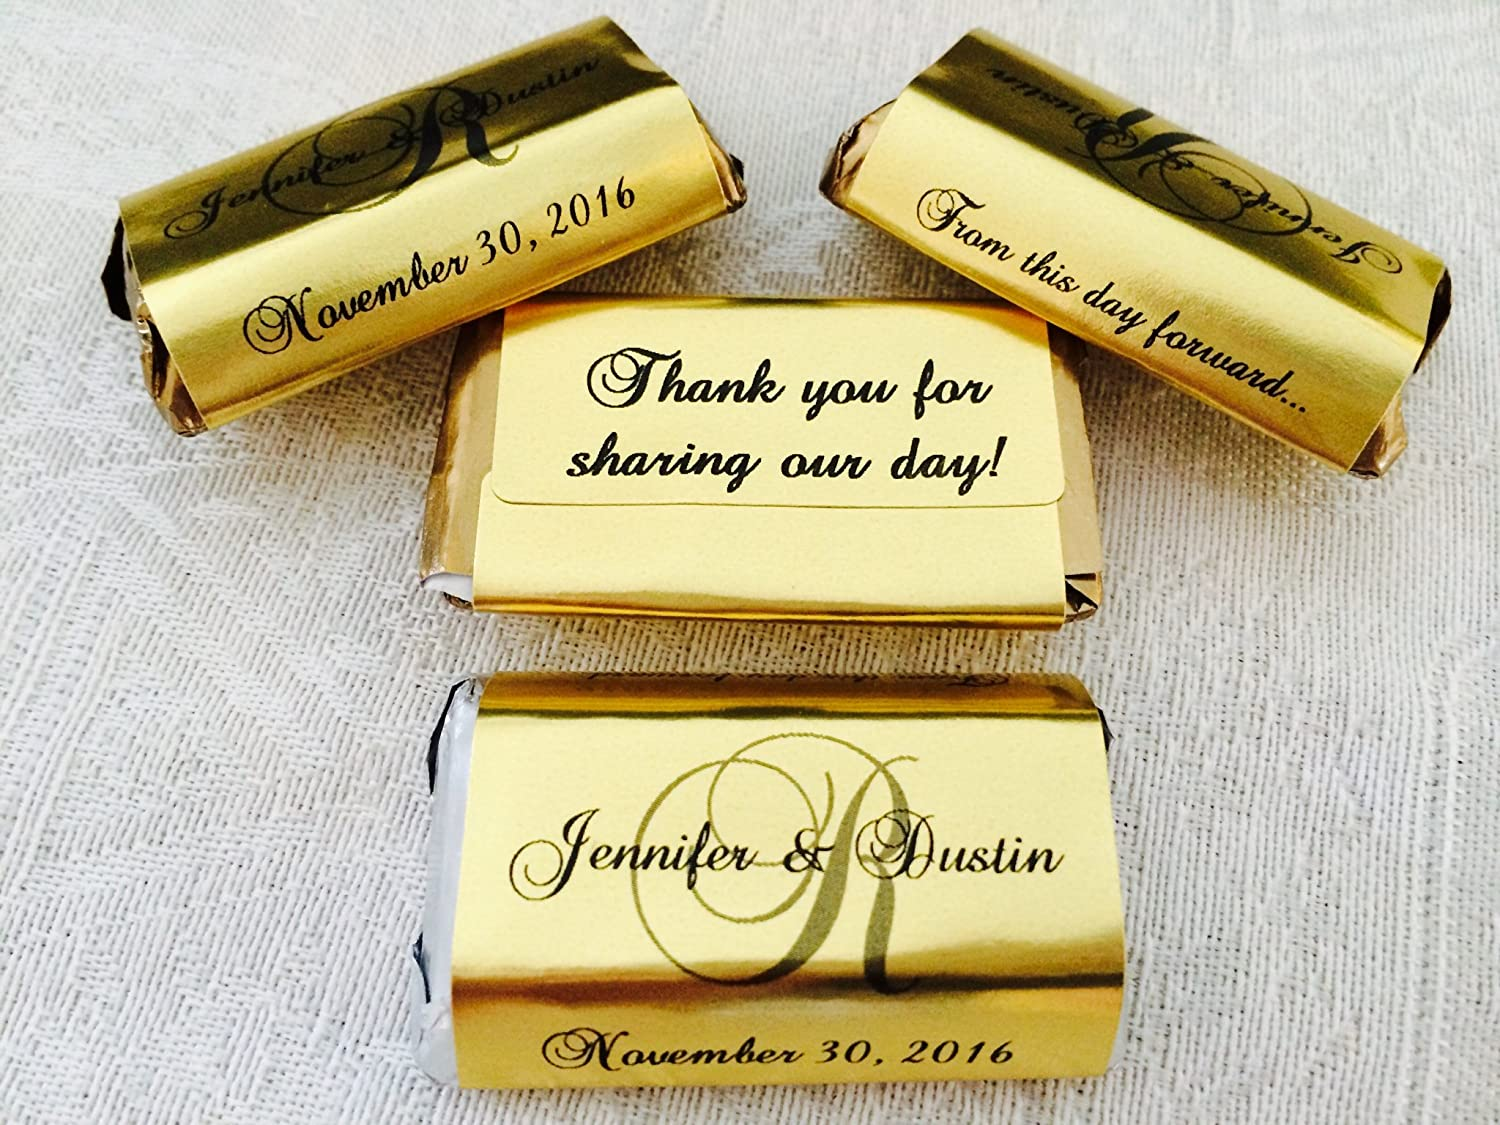 180 GOLD FOIL Monogram Wedding Candy wrappers/stickers/labels for your  HERSHEY MINIATURES chocolate bars (Personalized Favors) for any Party or  Event